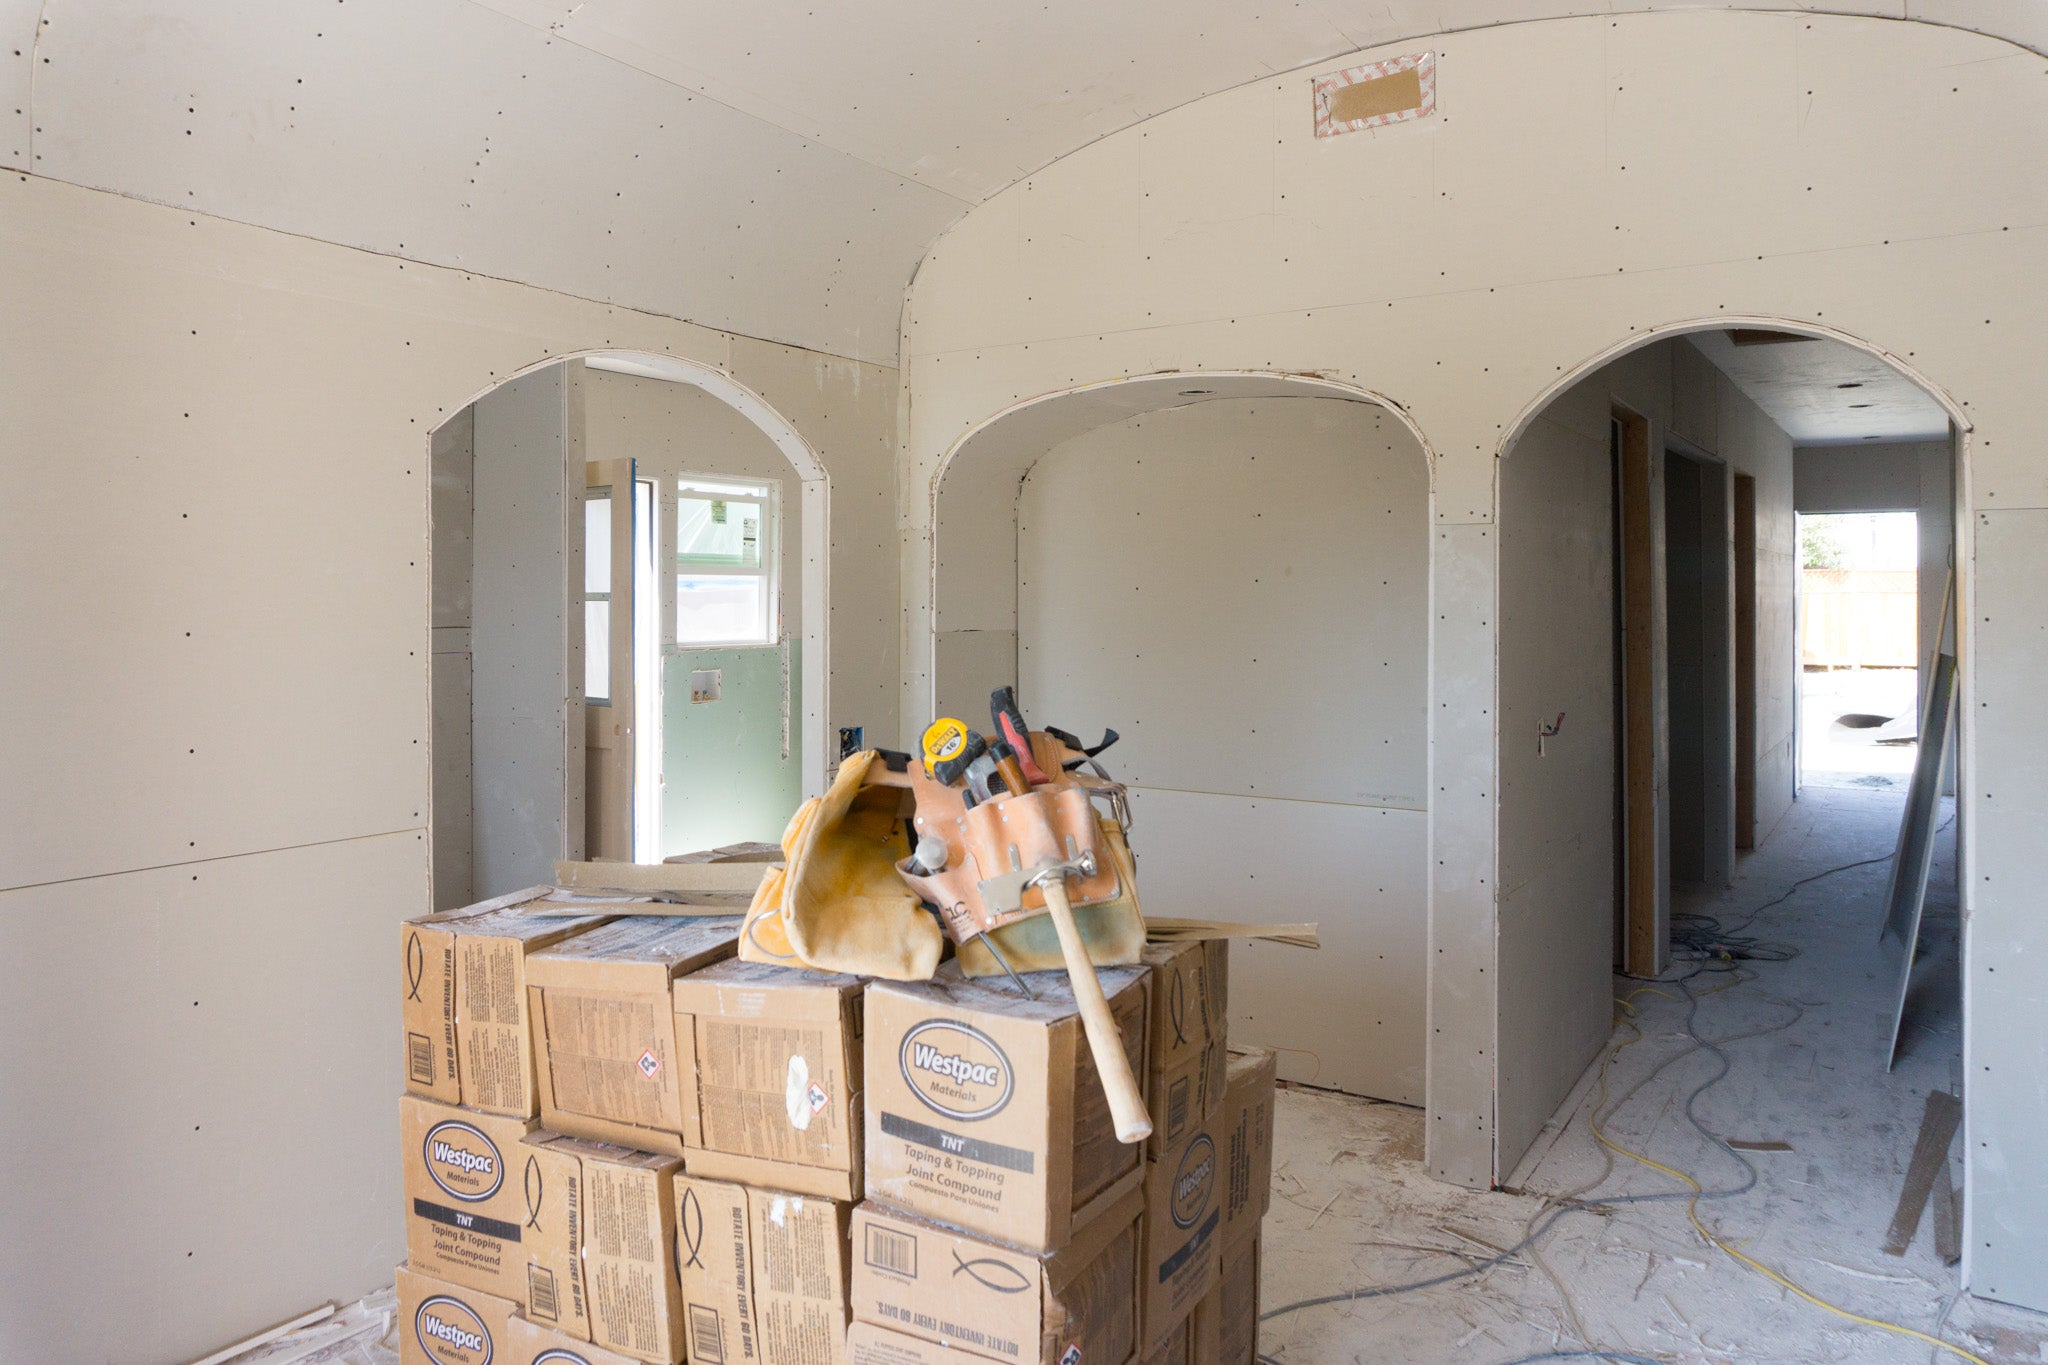 Recess Flip Highland Park House Drywall Installation Curved Doorways